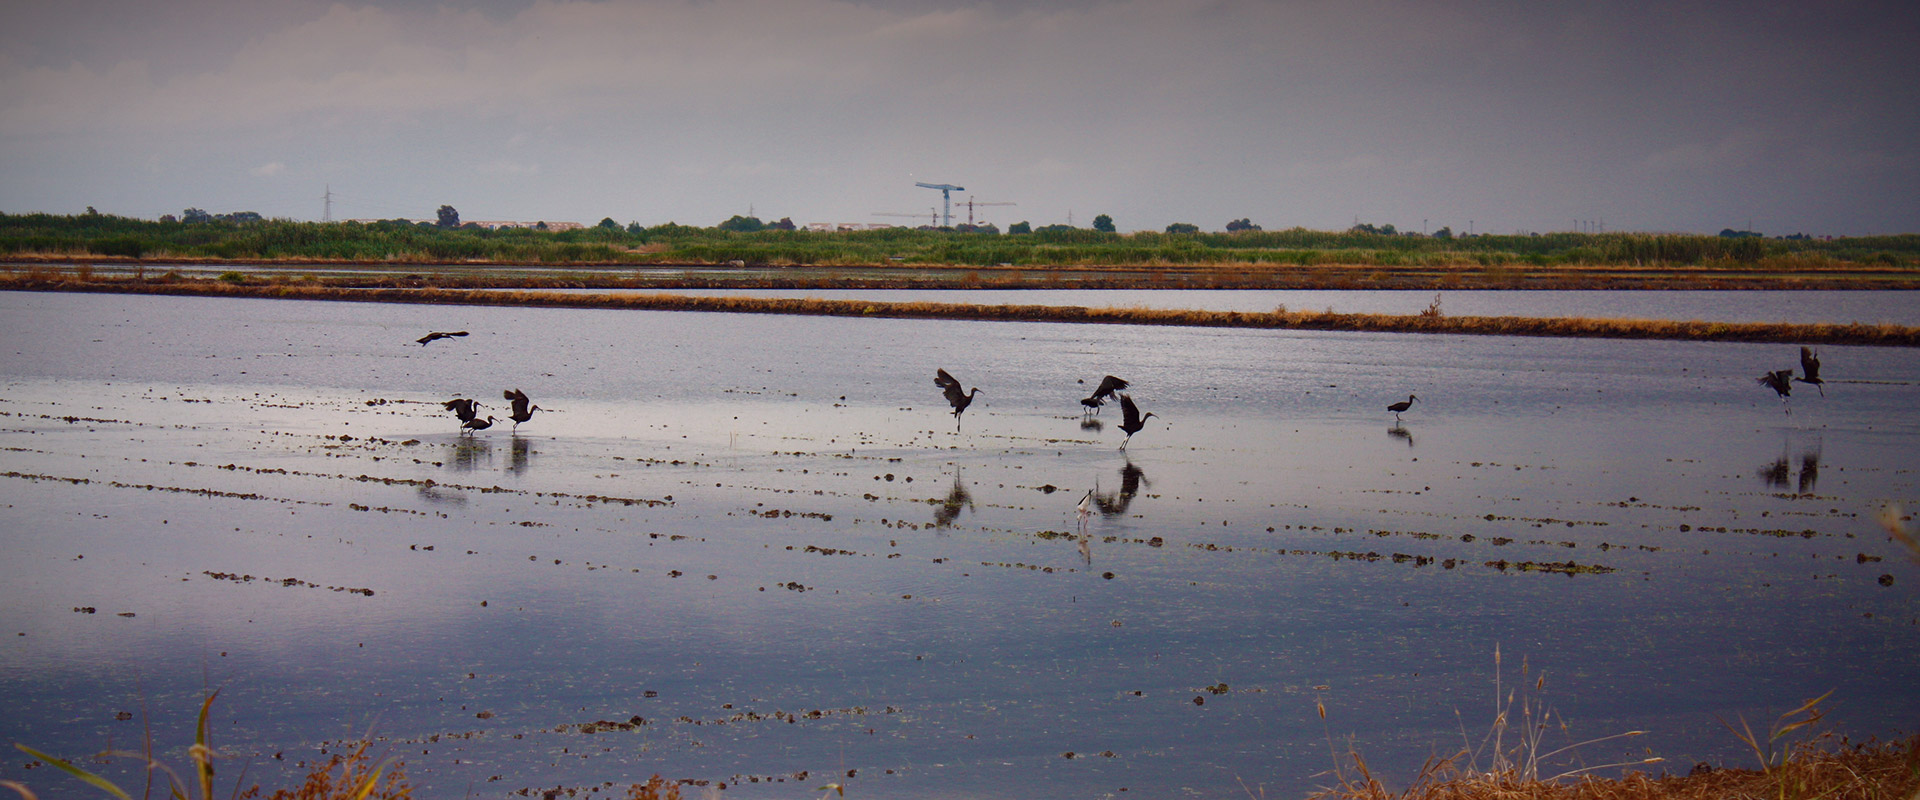 Wading birds in the Marjal de Pego Oliva